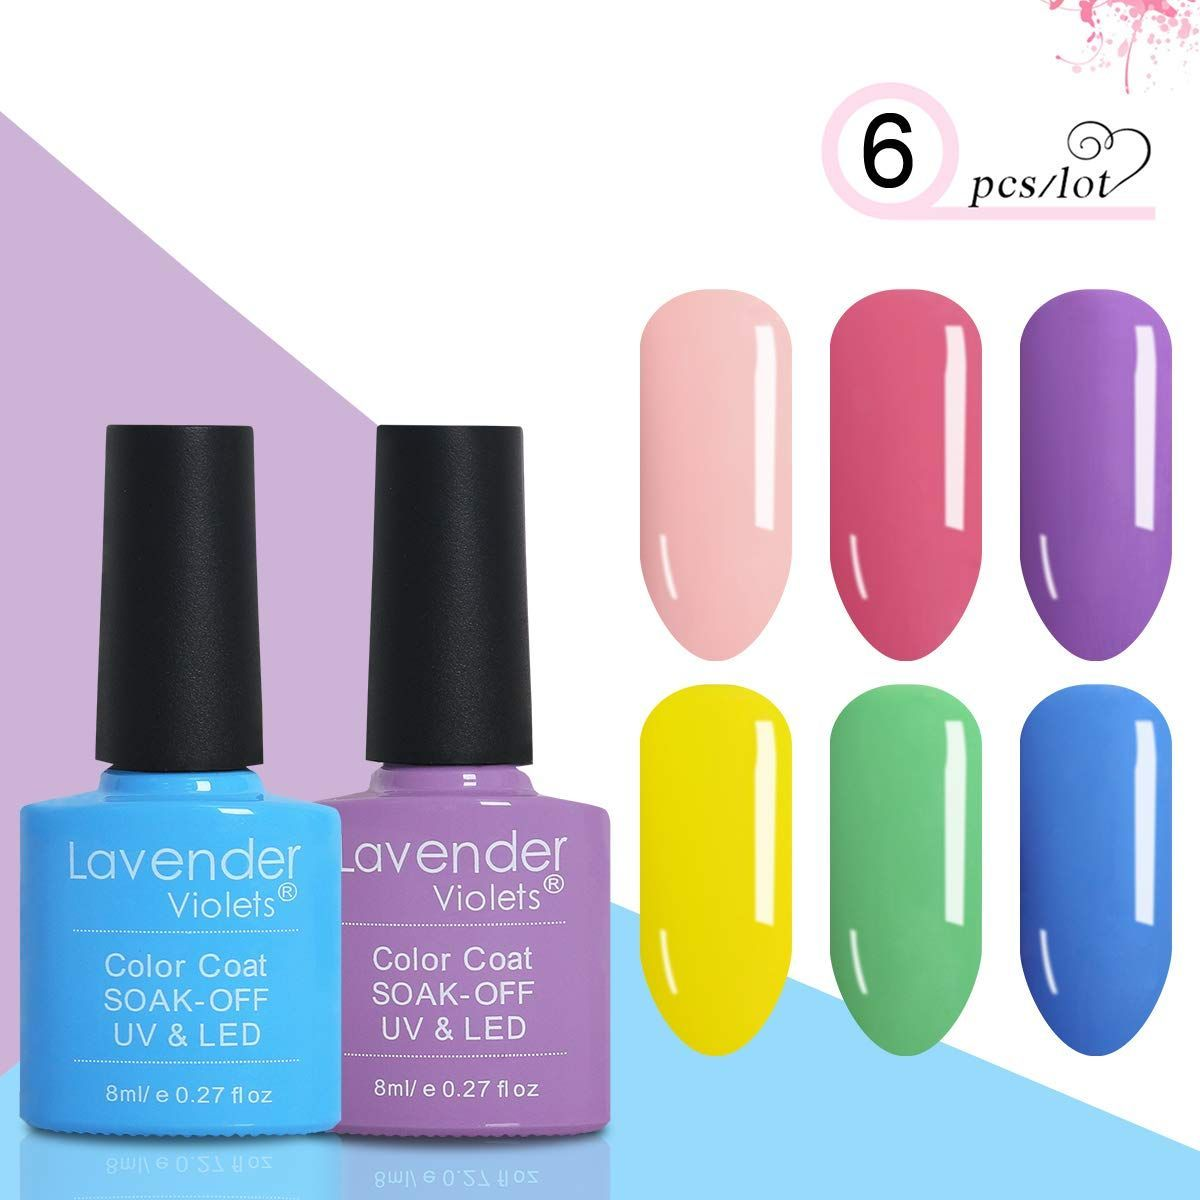 Lavender Violets 6 Colours Gel Nail Polish Set Uv Led Soak Off Gel Varnish Kit 8ml Easter Combo Amazon Co Uk Amazon Nail Polish Gel Nail Polish Set Uv Led